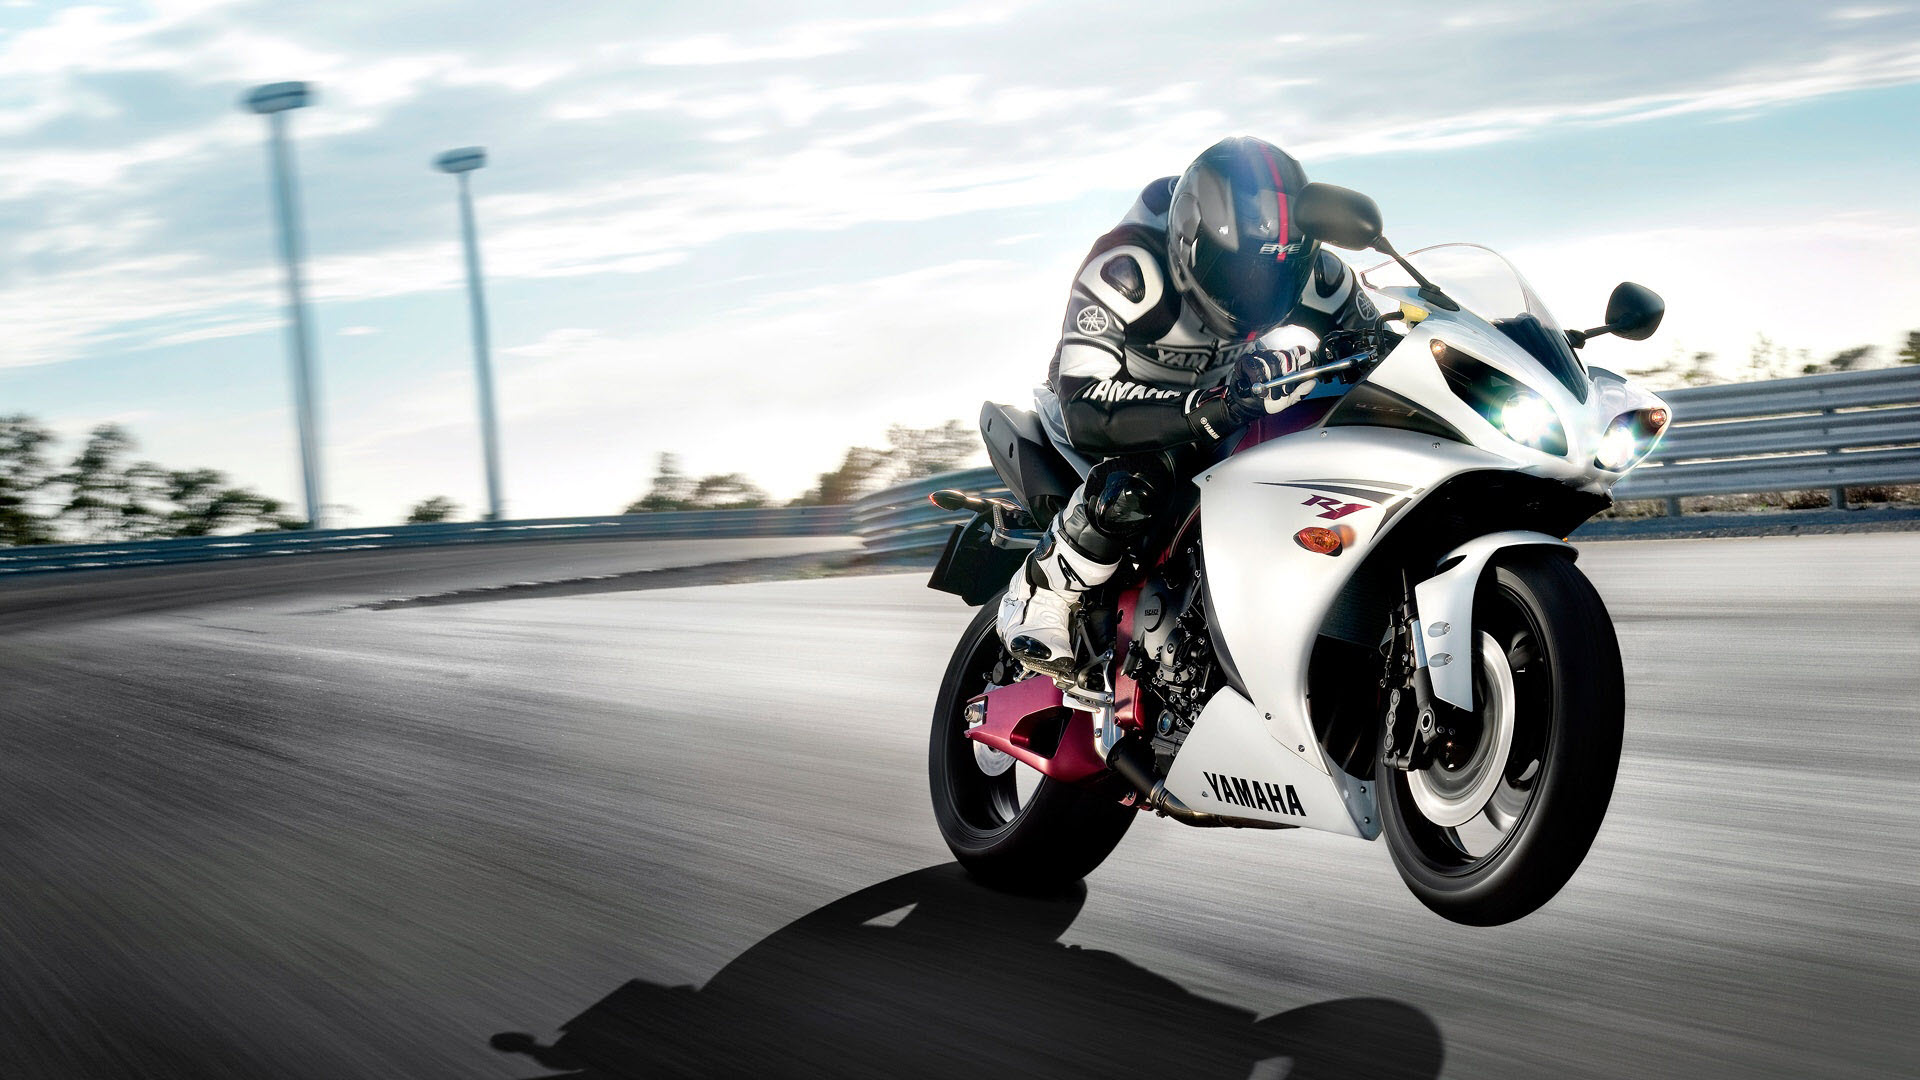 Download Free Bikes And Cars Desktop Wallpapers, Screen ...